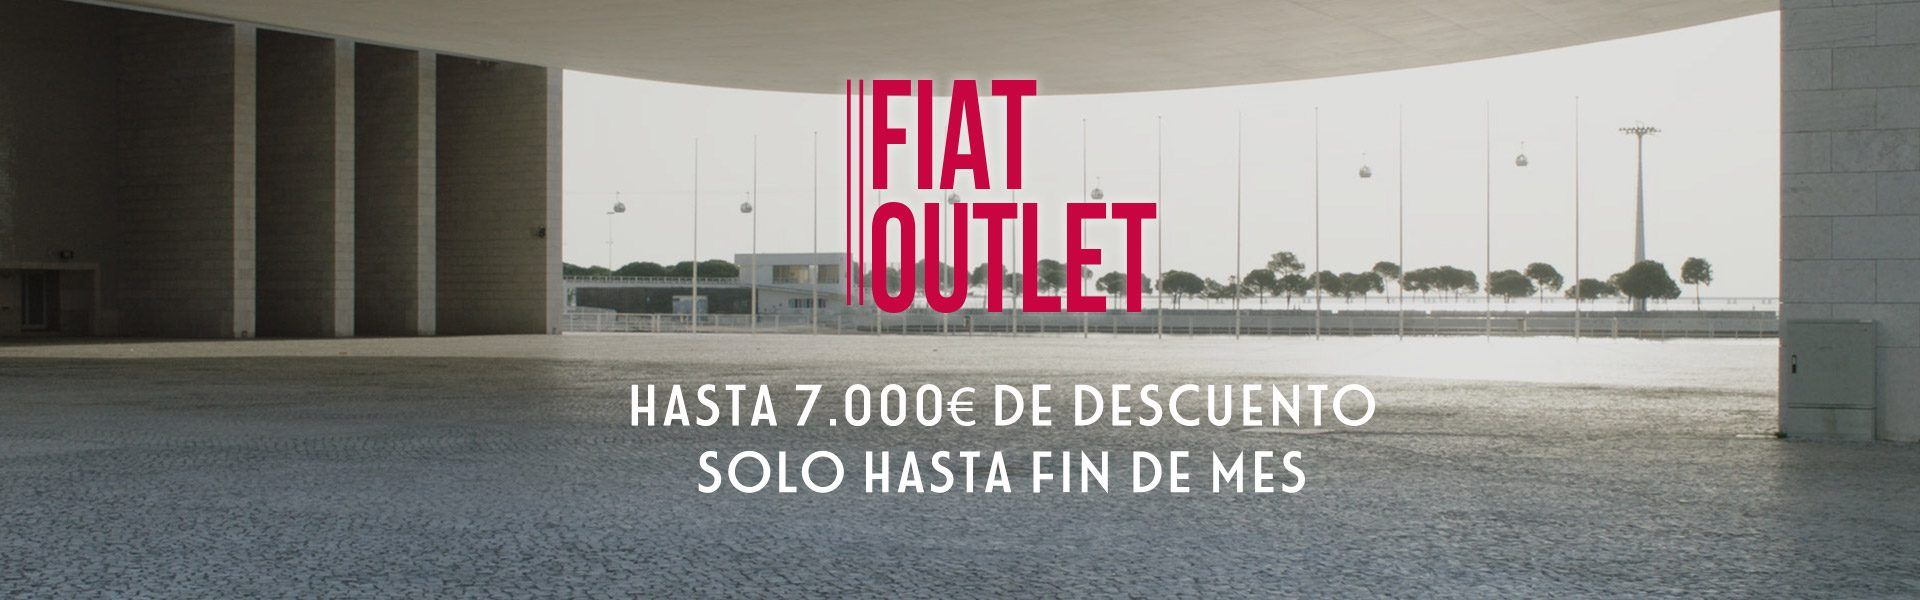 FIAT OUTLET